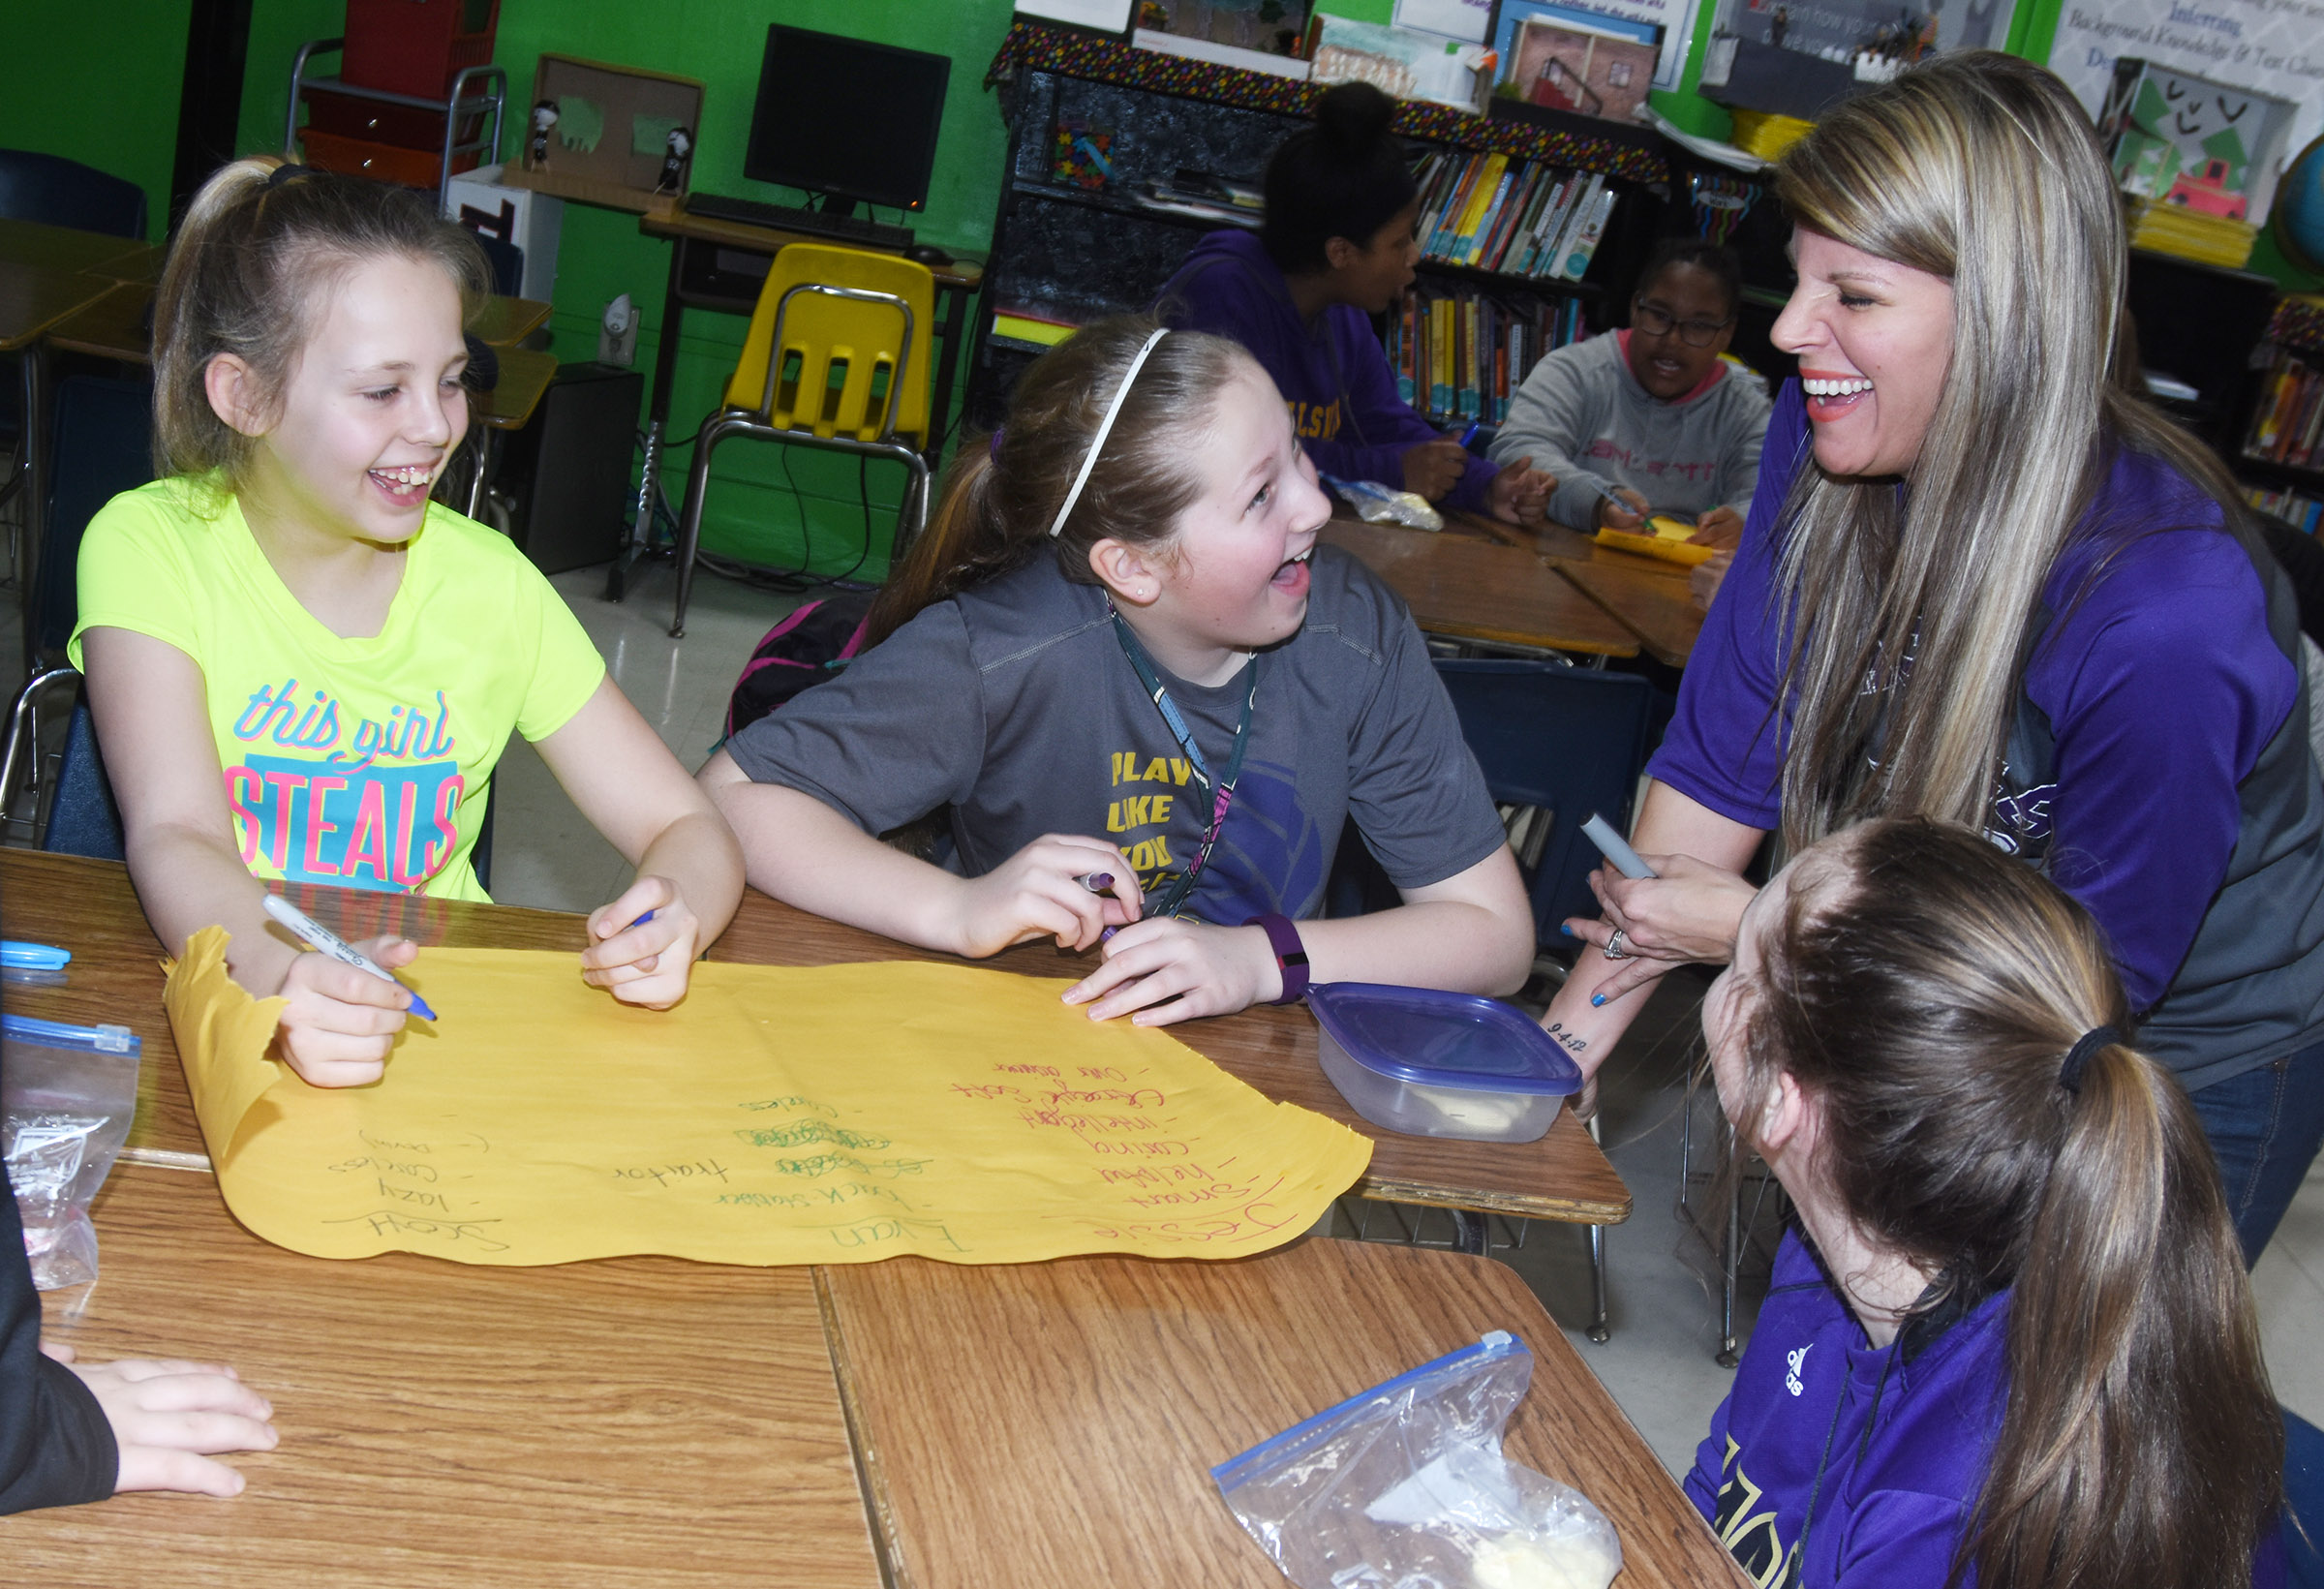 CMS sixth-grade teacher Andrea Gribbins works with, from left, Gabby Bright, Ava Hughes and CheyAnn Edwards in a reading session.